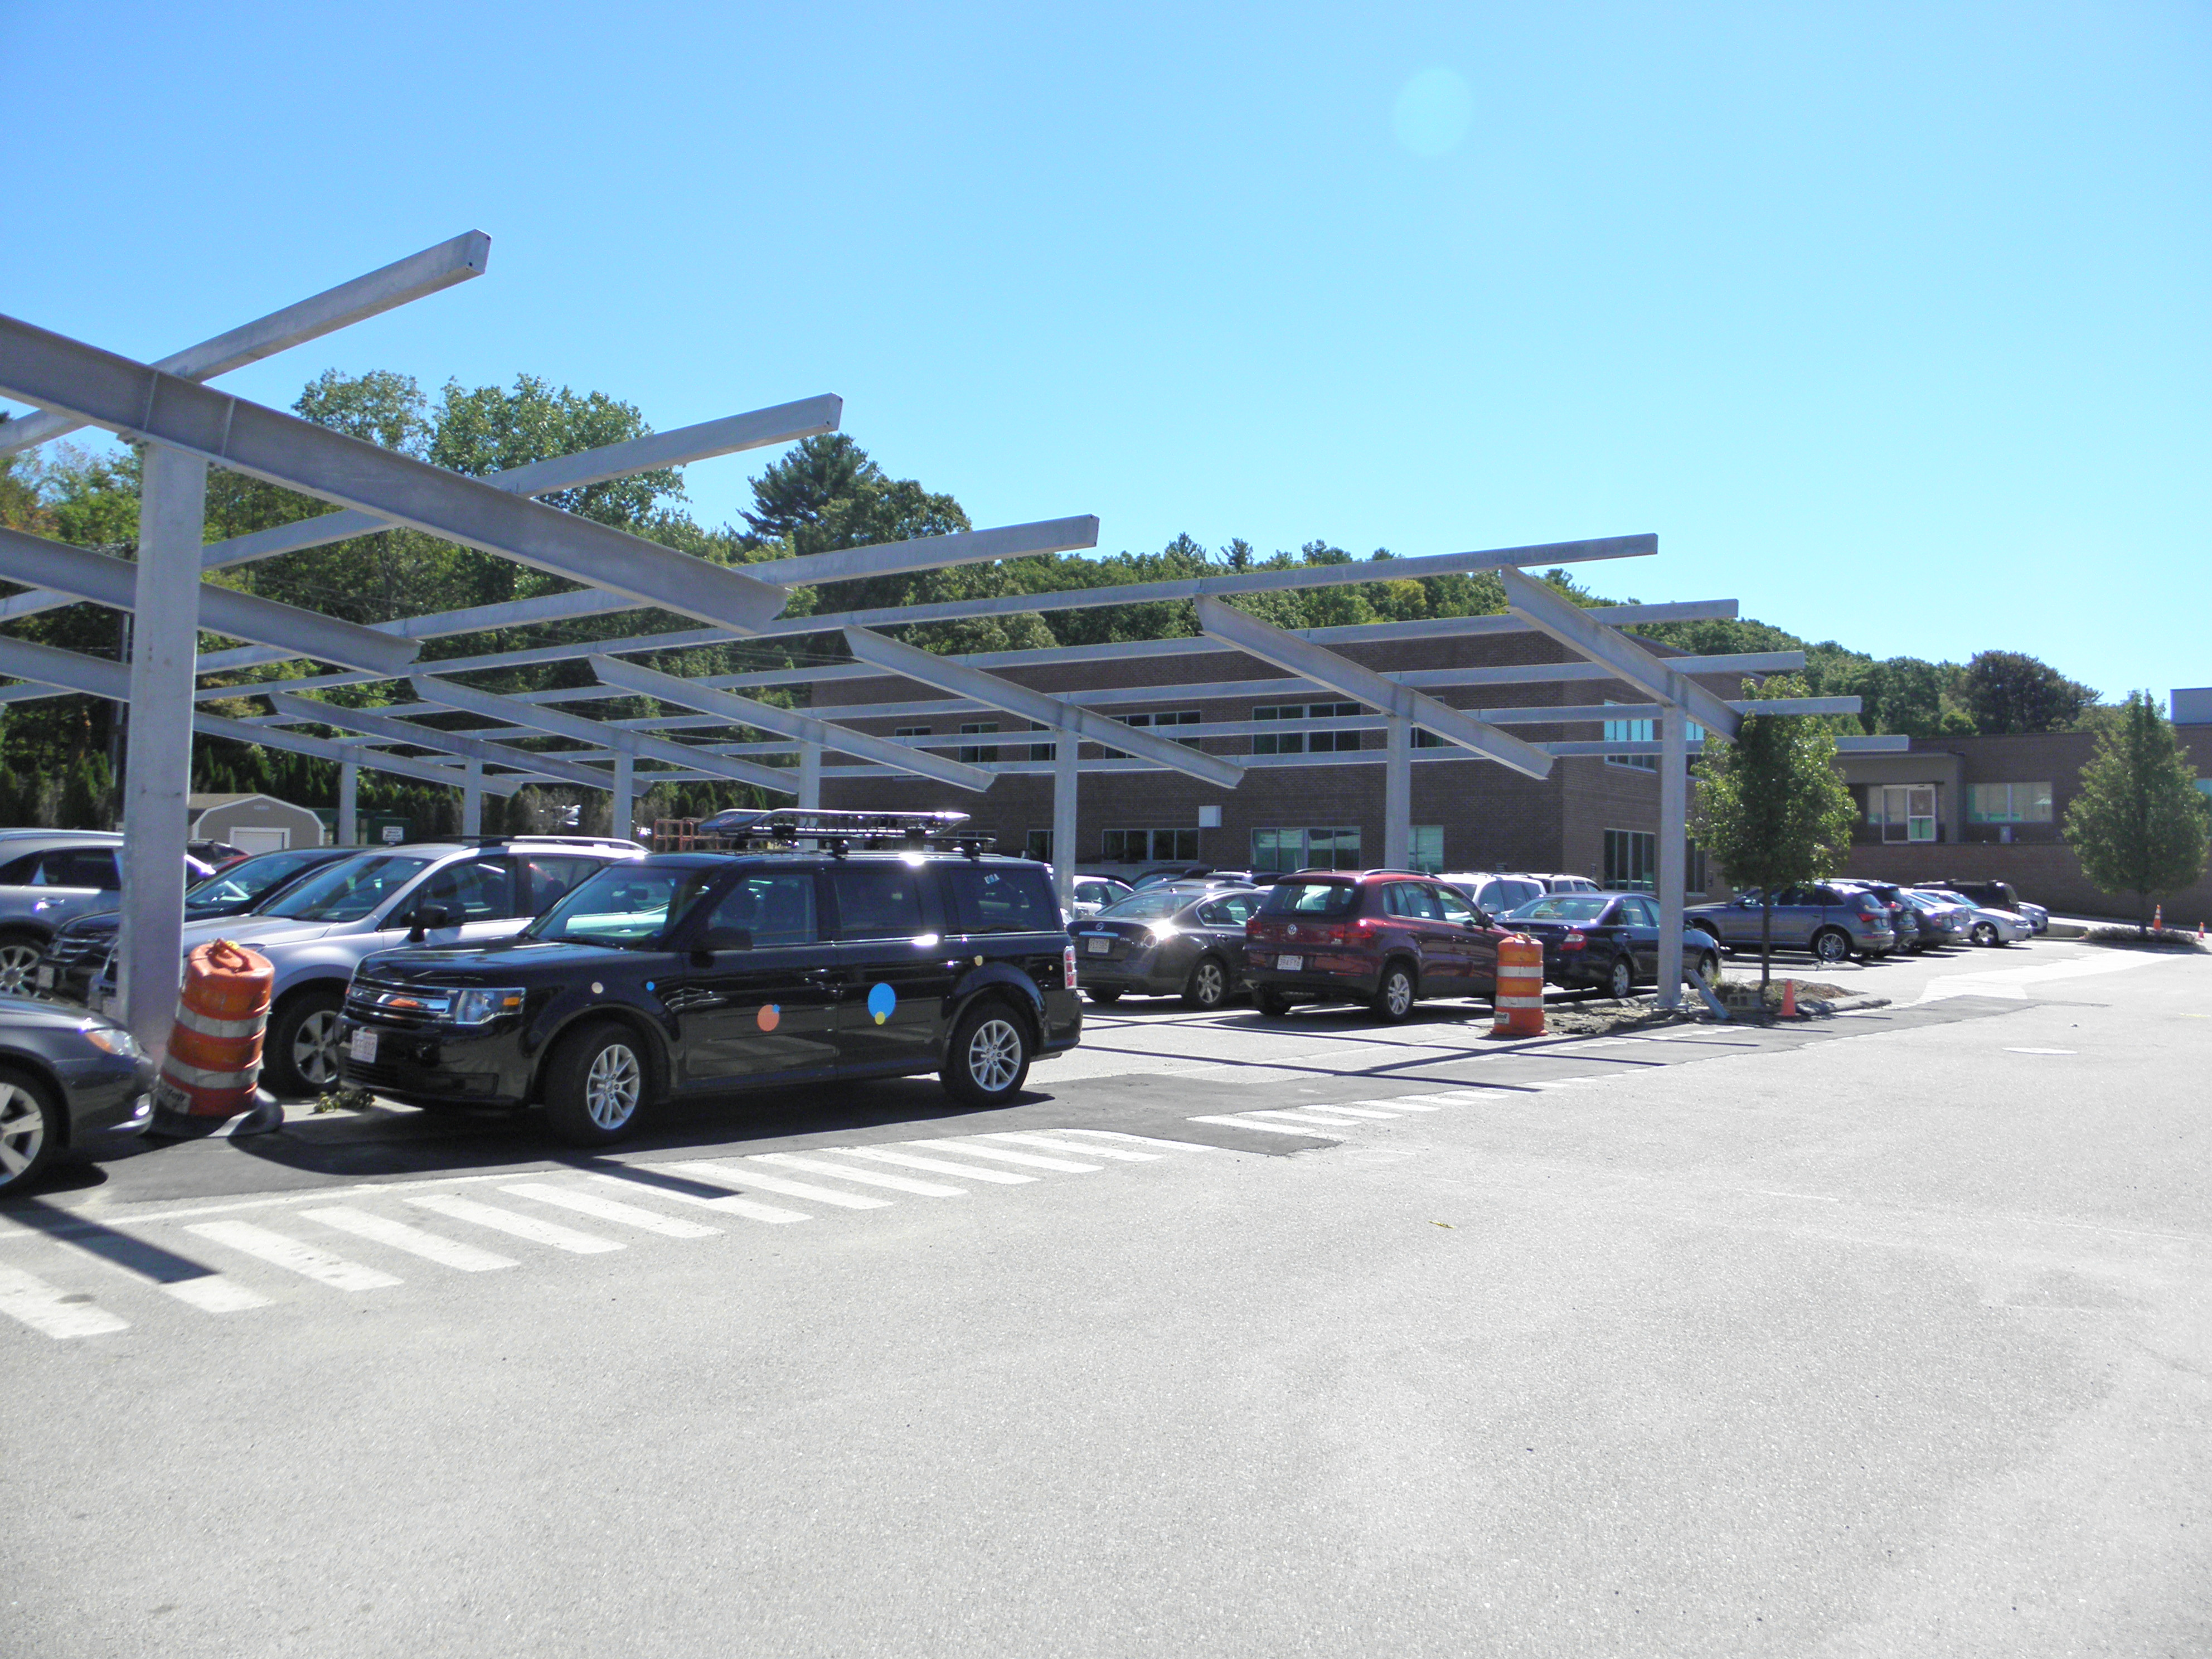 800 KW Solar Canopy & Solar Power Photo Gallery Solar Energy Pictures | Structural ...